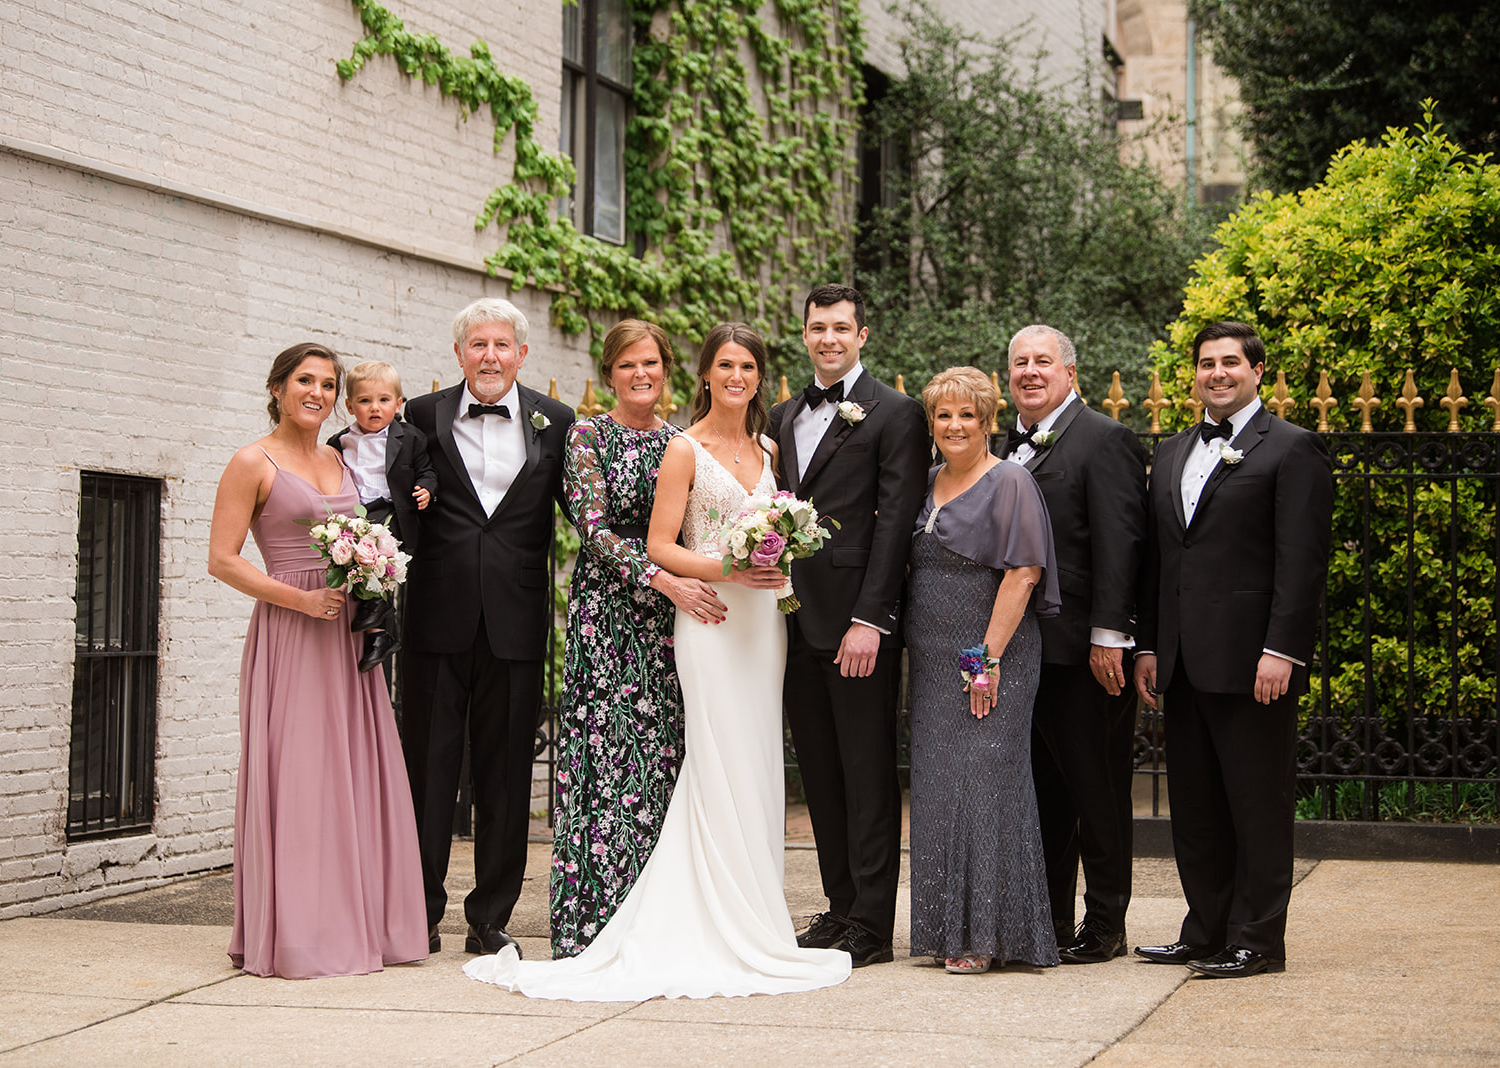 bride and groom stand with their wedding party